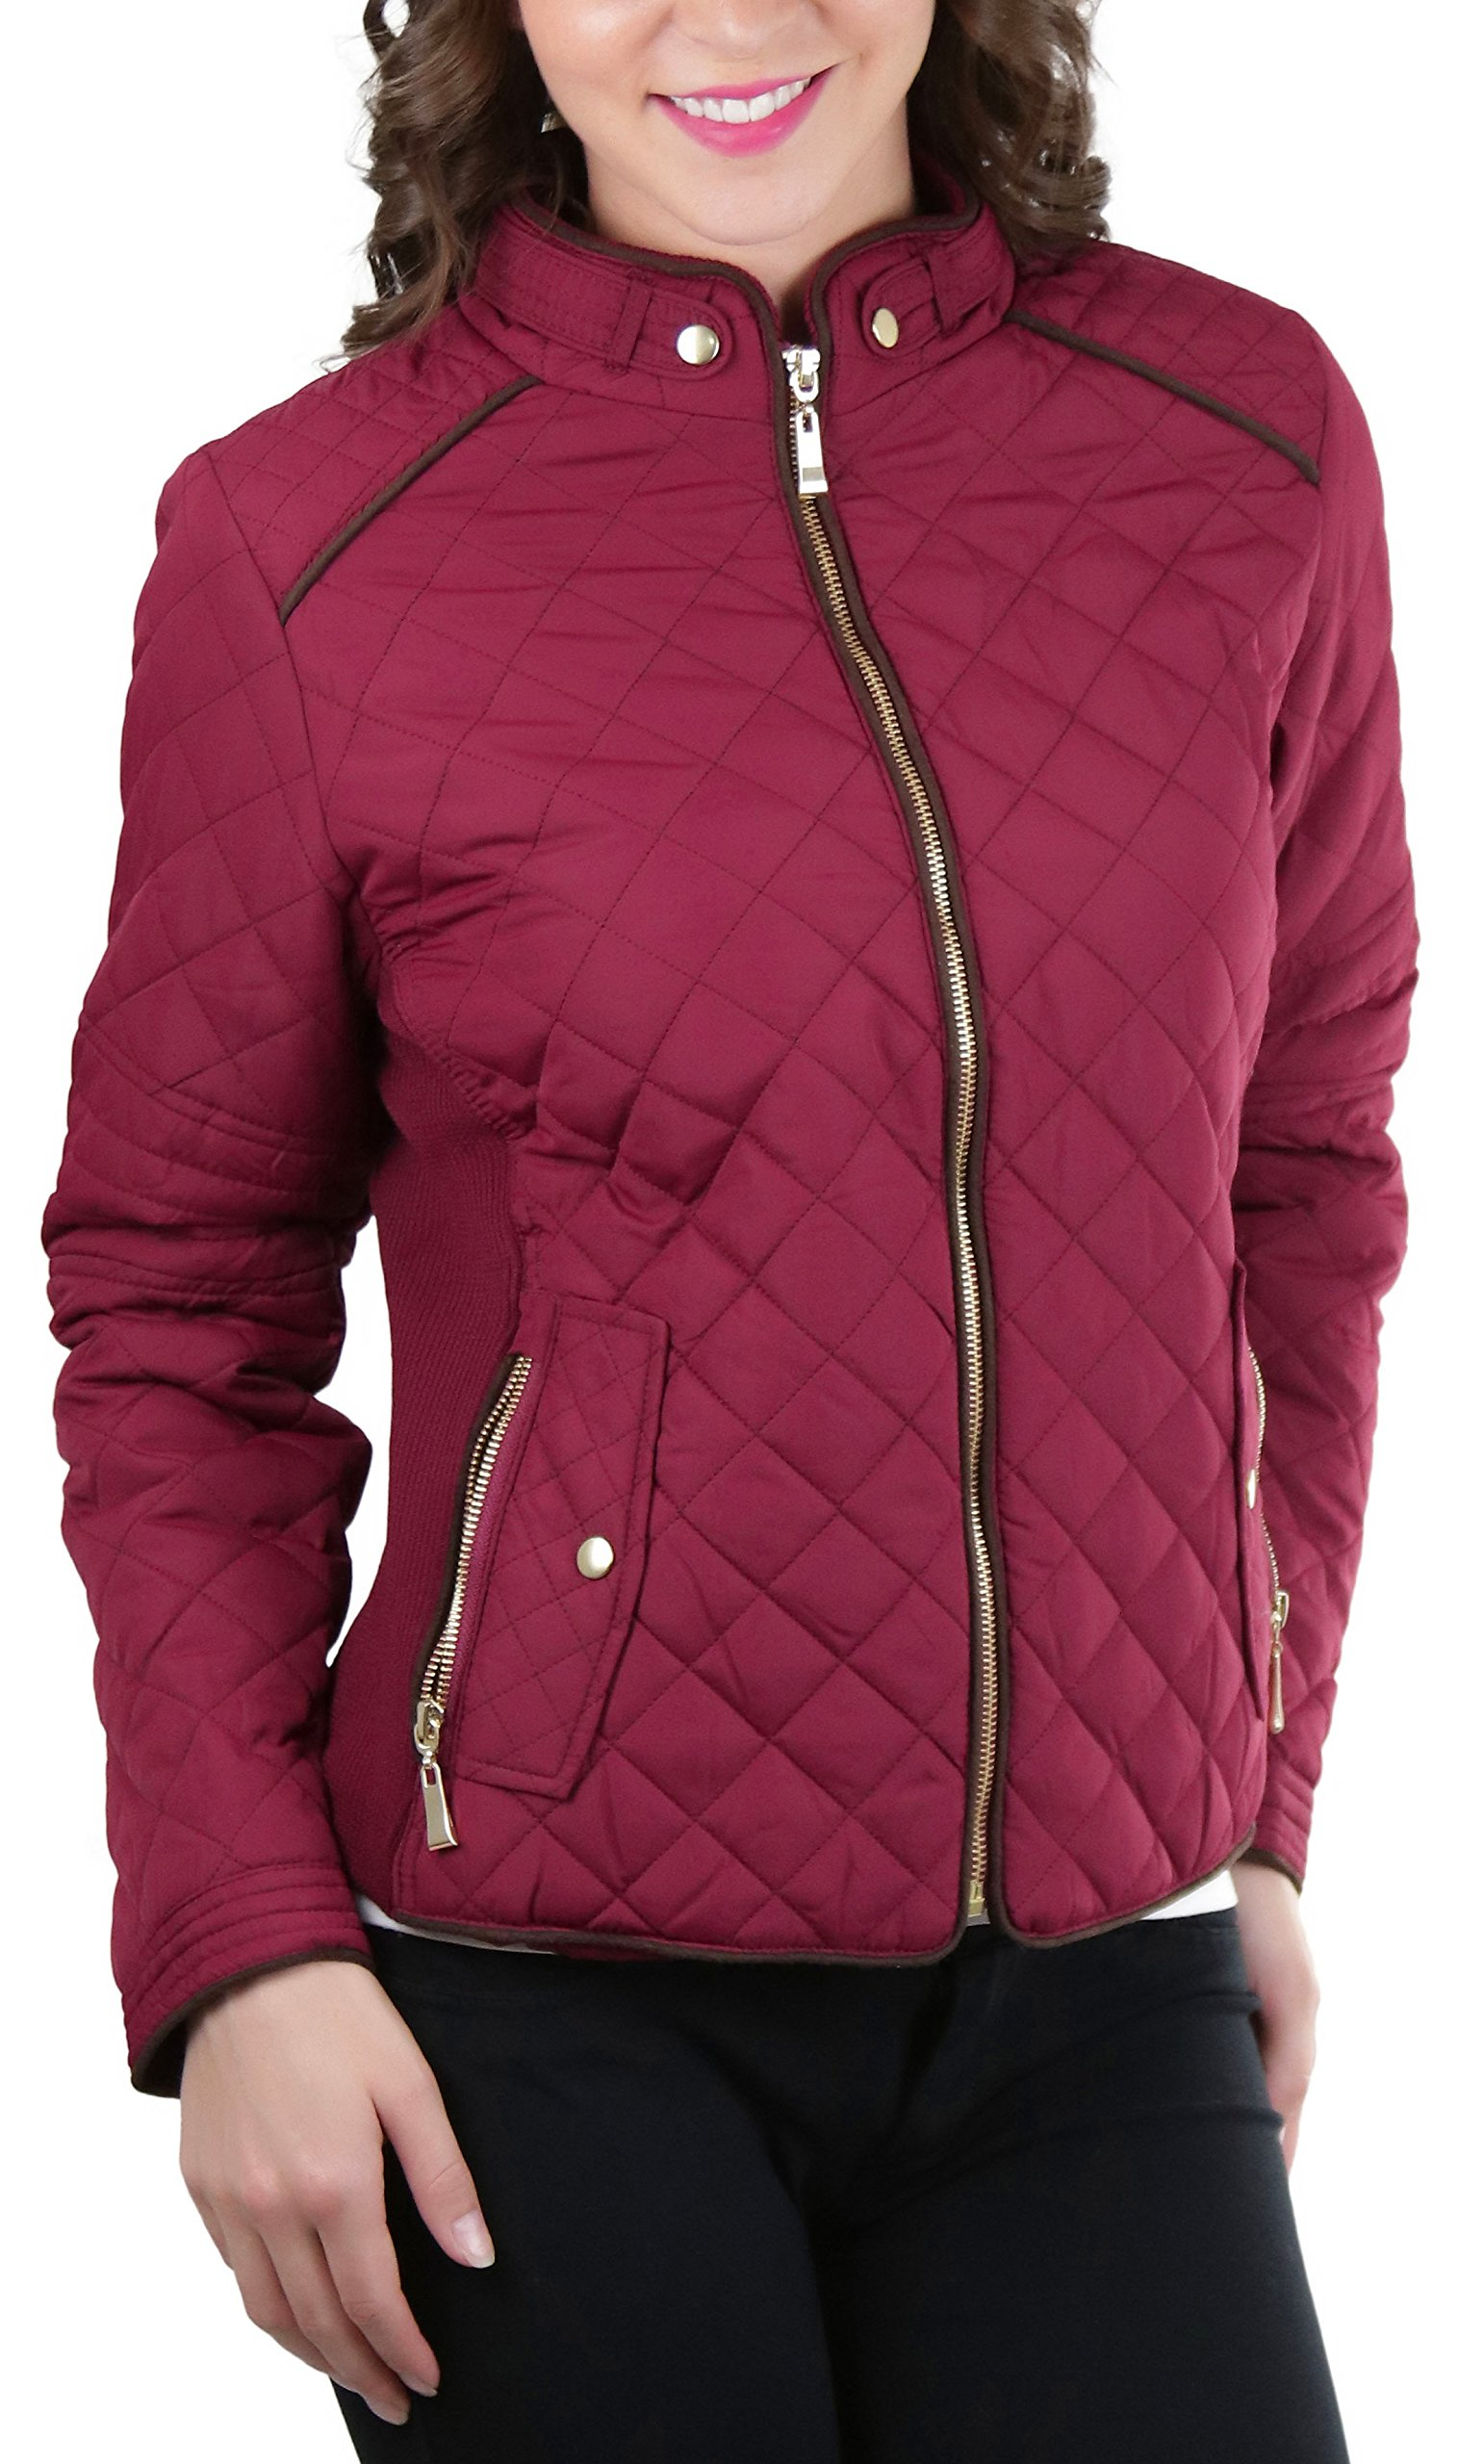 ToBeInStyle Women's Quilted Padded Jacket Suede Piping - Burgundy - Large